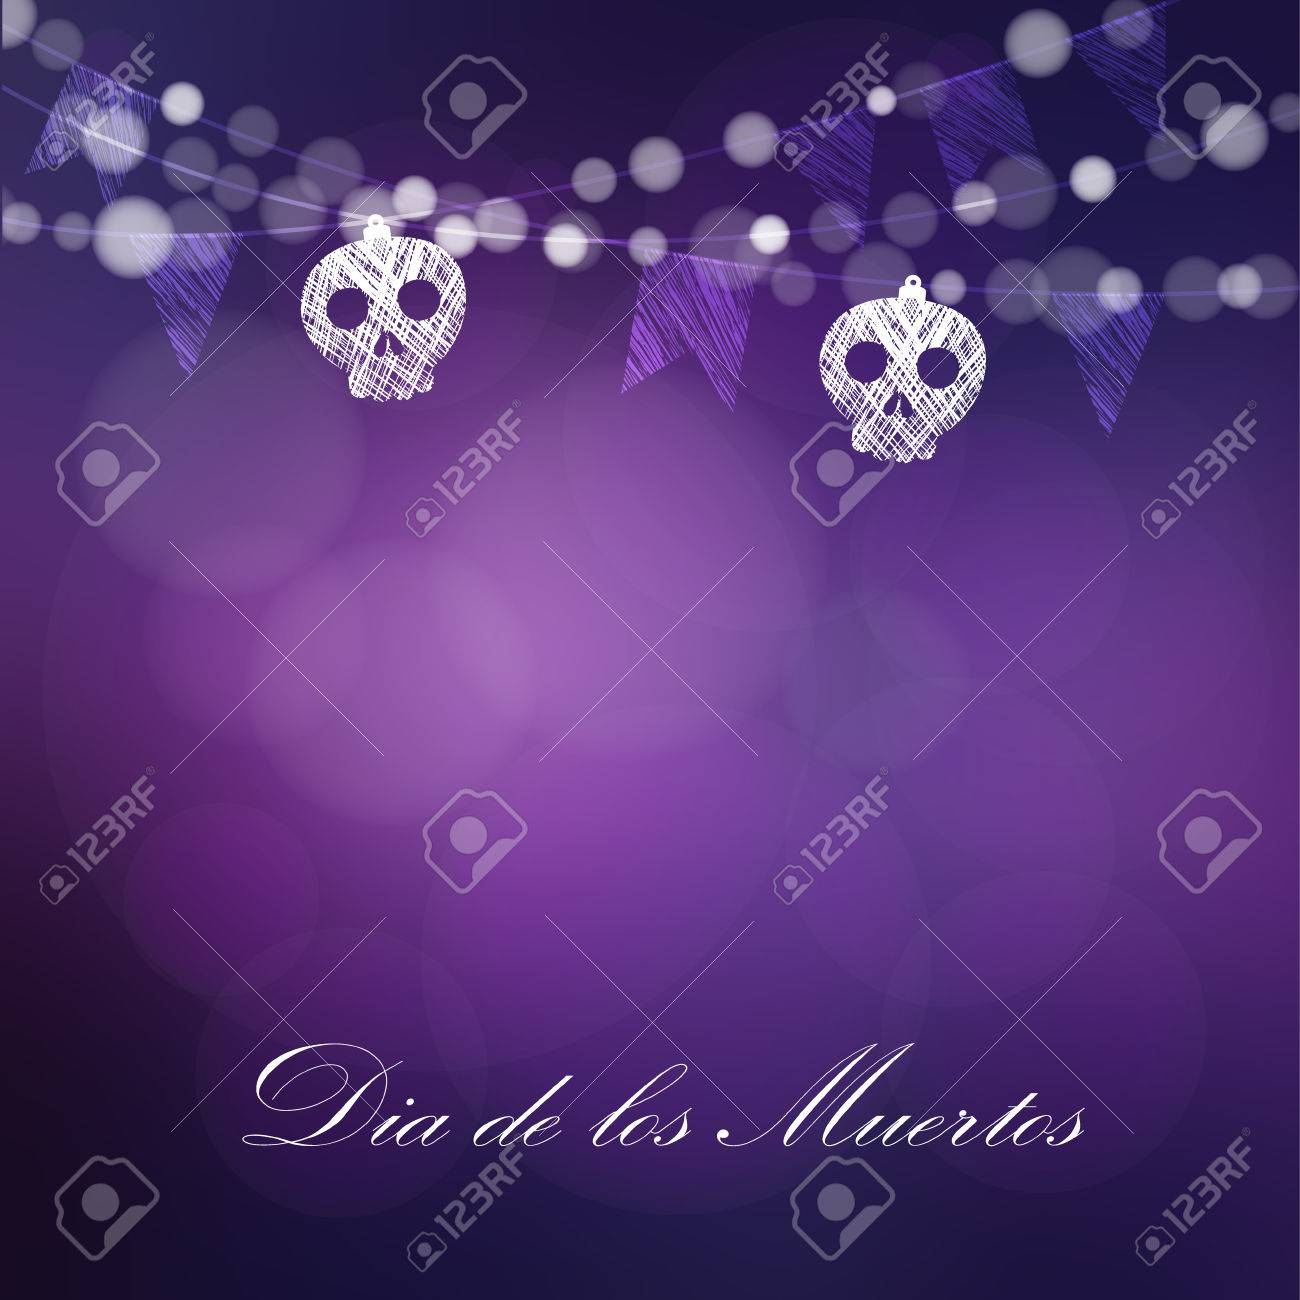 Dia de Los Muertos, Day of the Dead or Halloween card, invitation. String of lights, sculls and party flags. Vector illustration background - 62180097